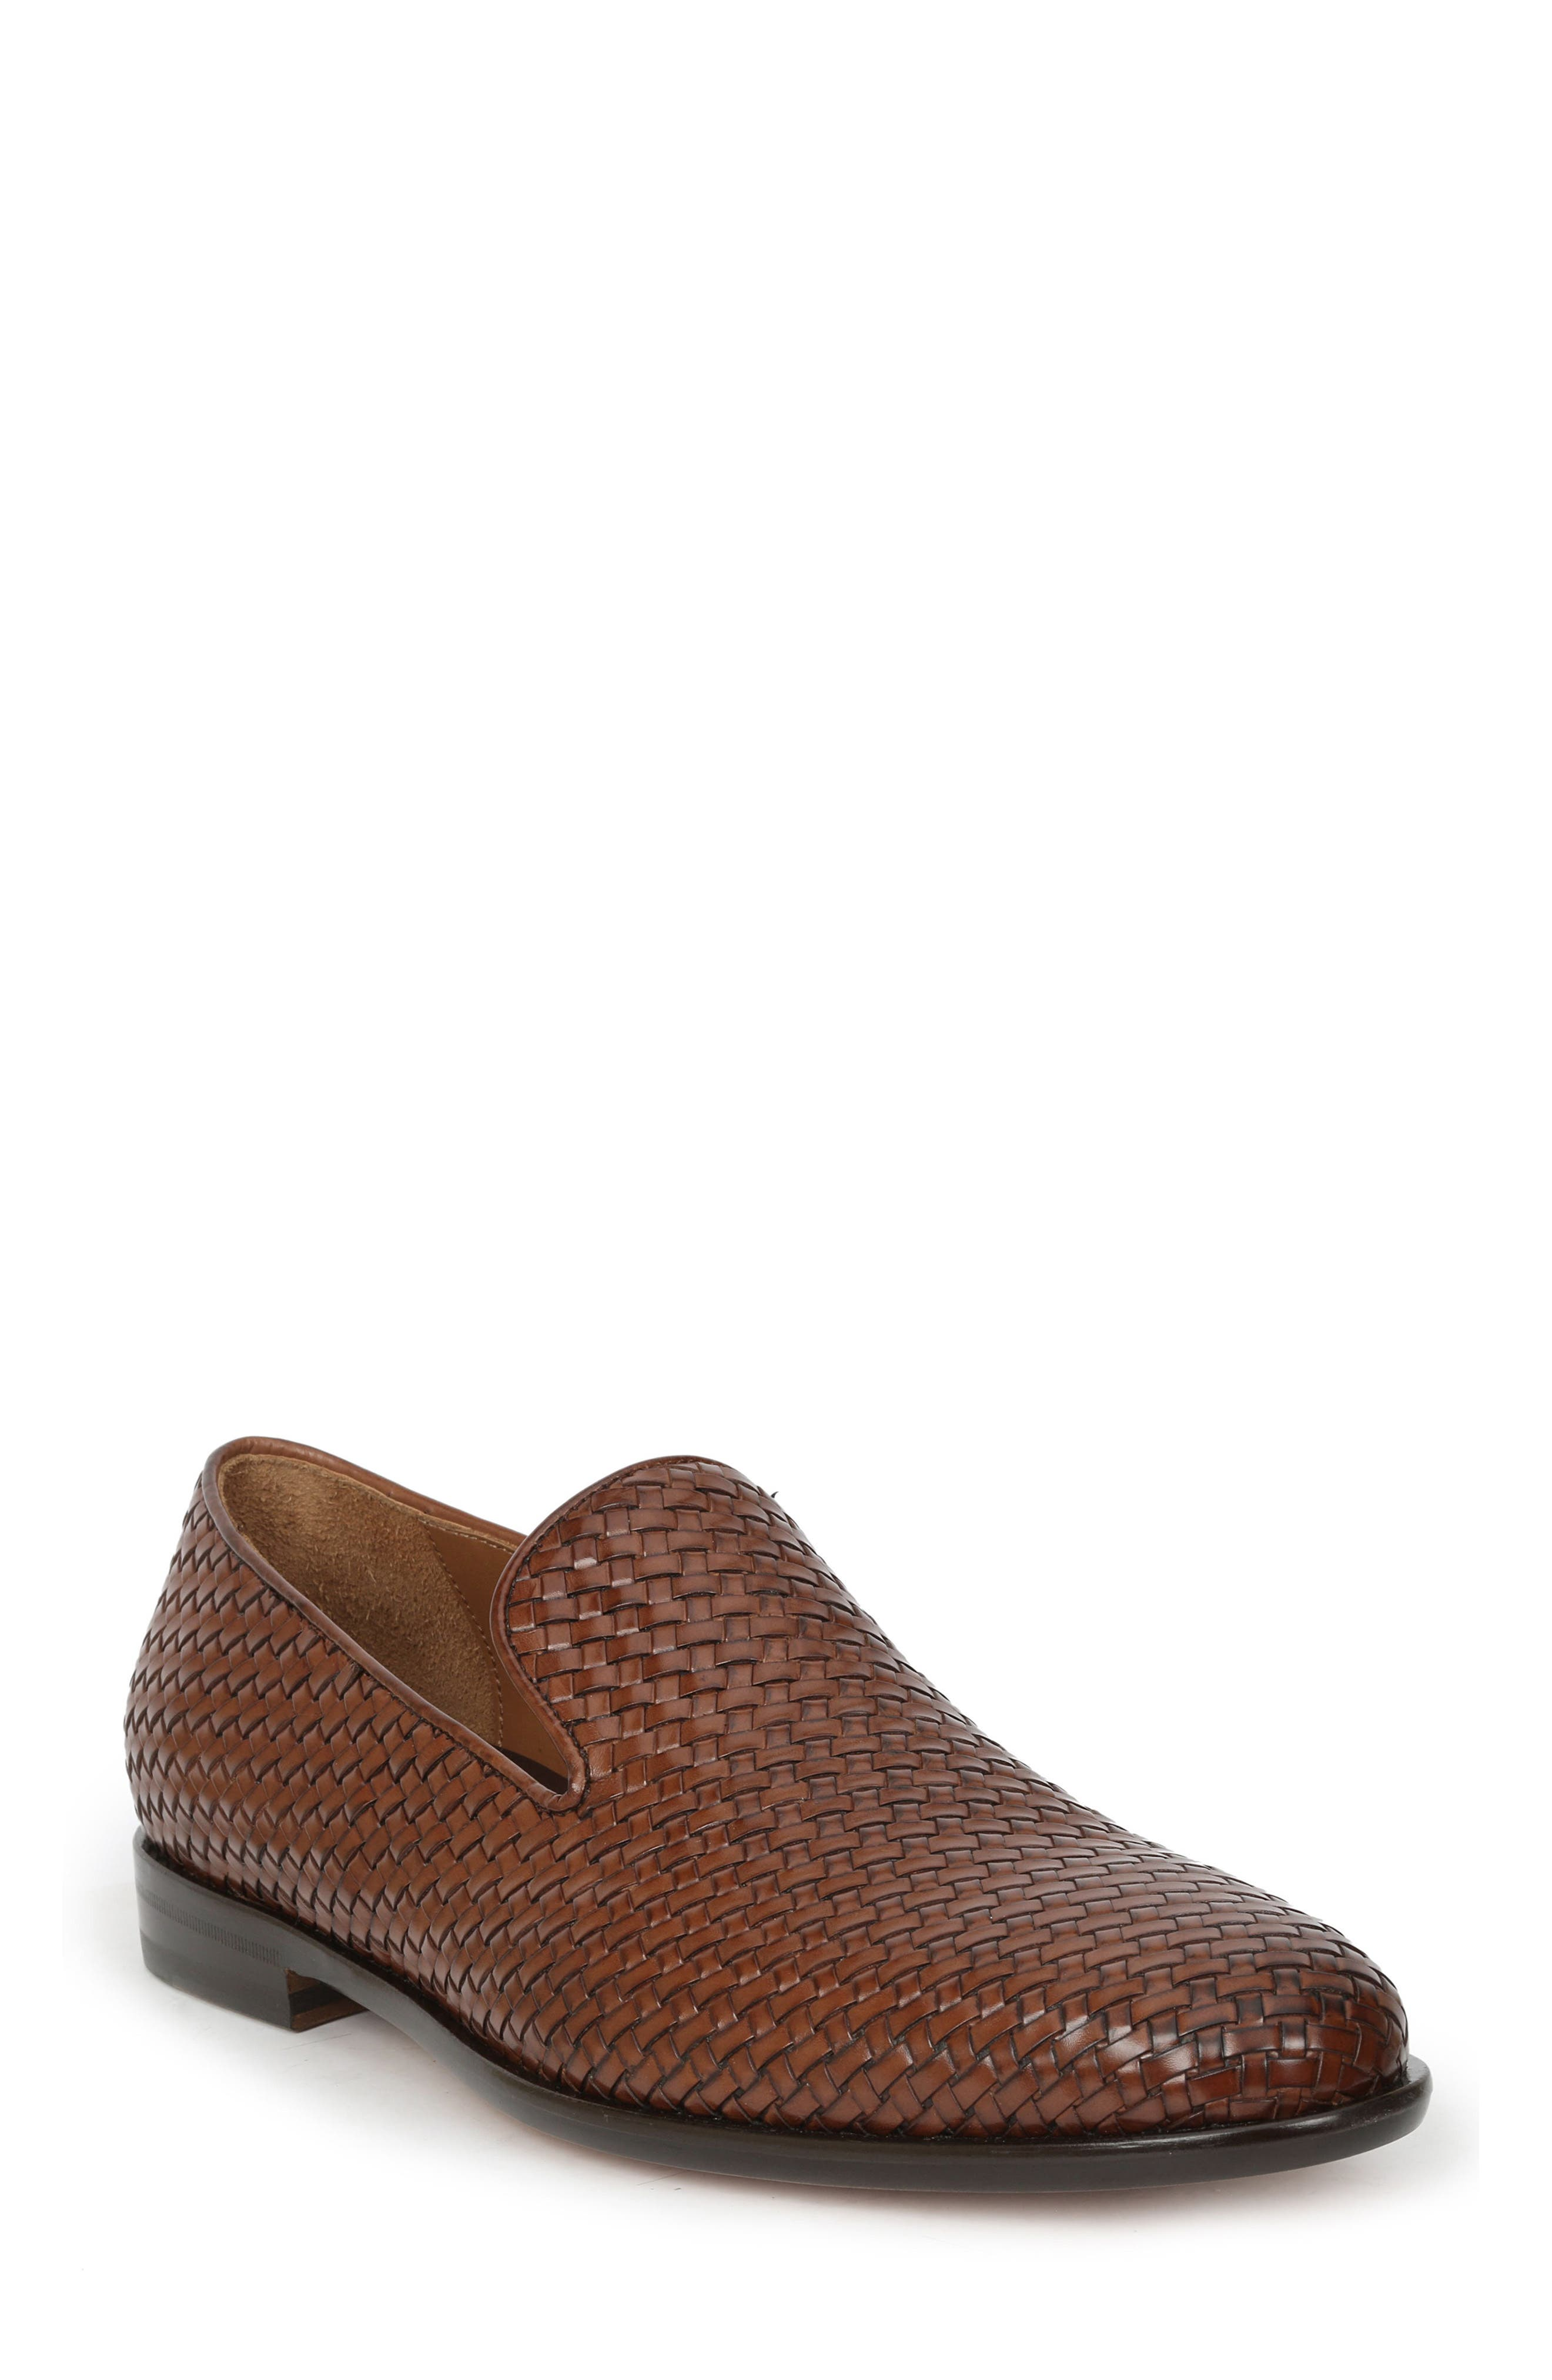 Picasso Woven Venetian Loafer,                         Main,                         color, Cognac